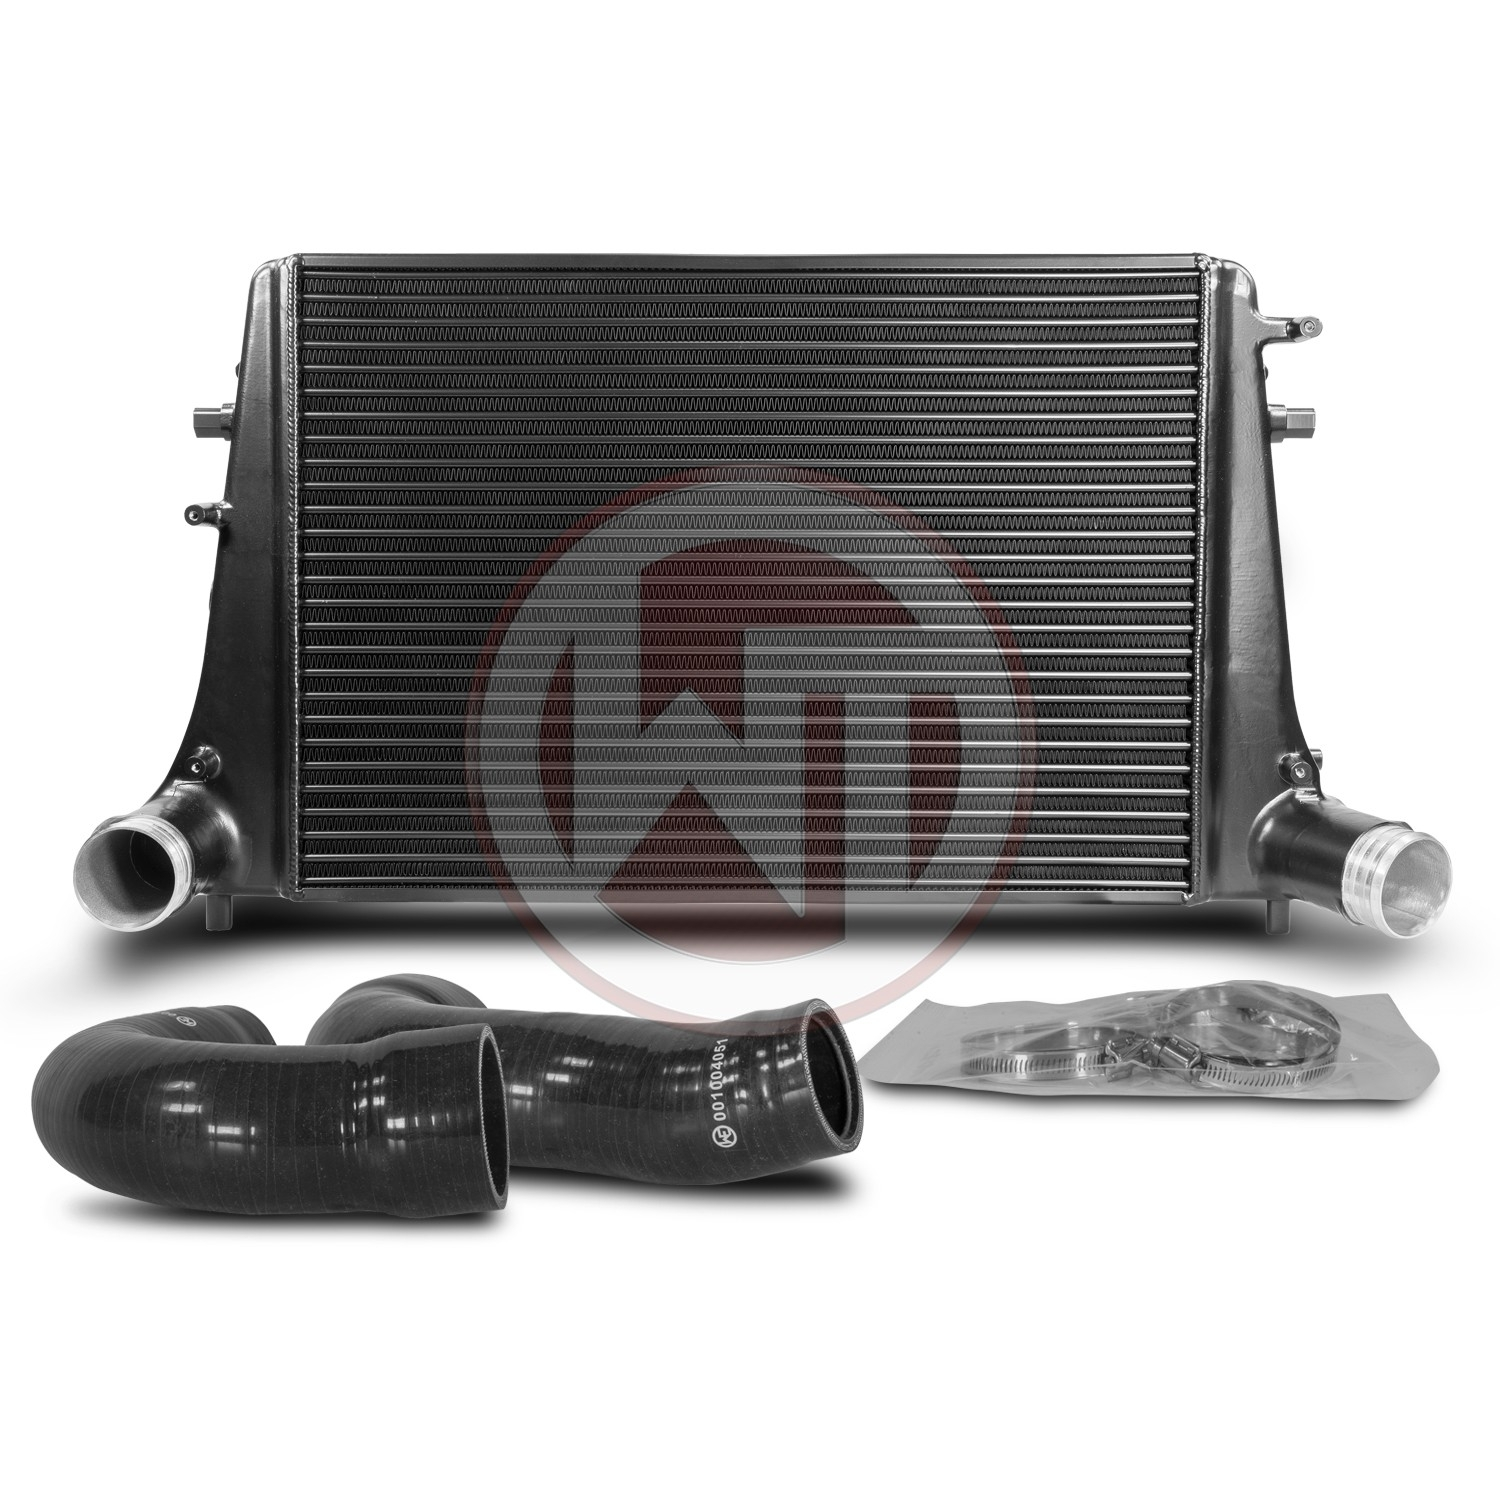 VAG Mk5/6 1.6 2.0 TDI Gen.2 Competition Intercooler Kit